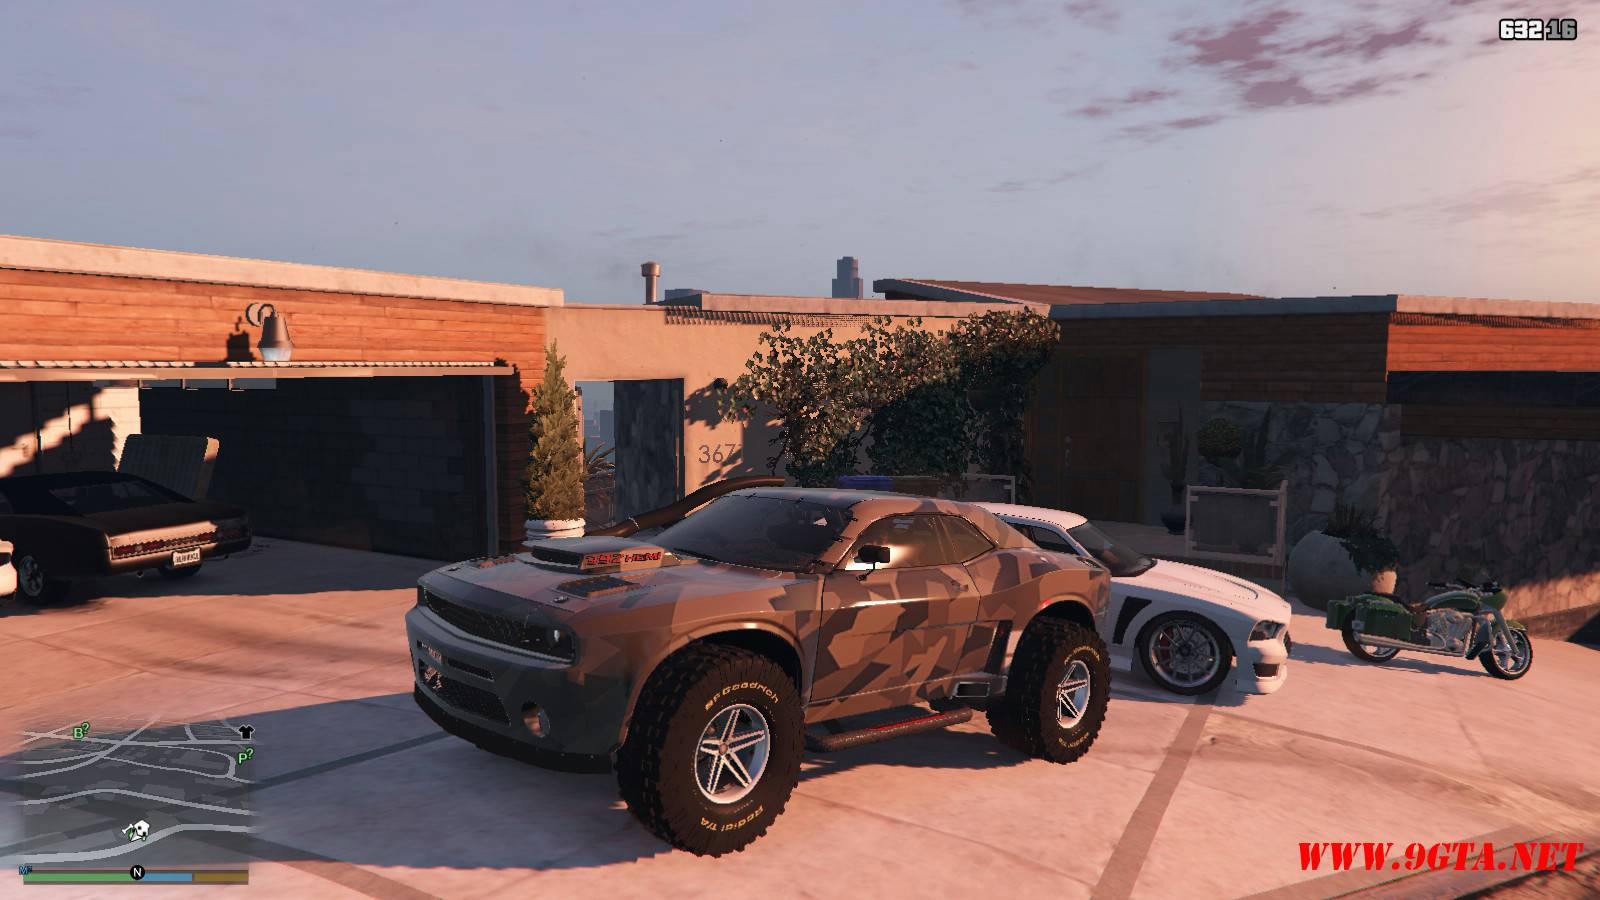 Dodge Charger RAID v1.0 Mod For GTA5 (1)